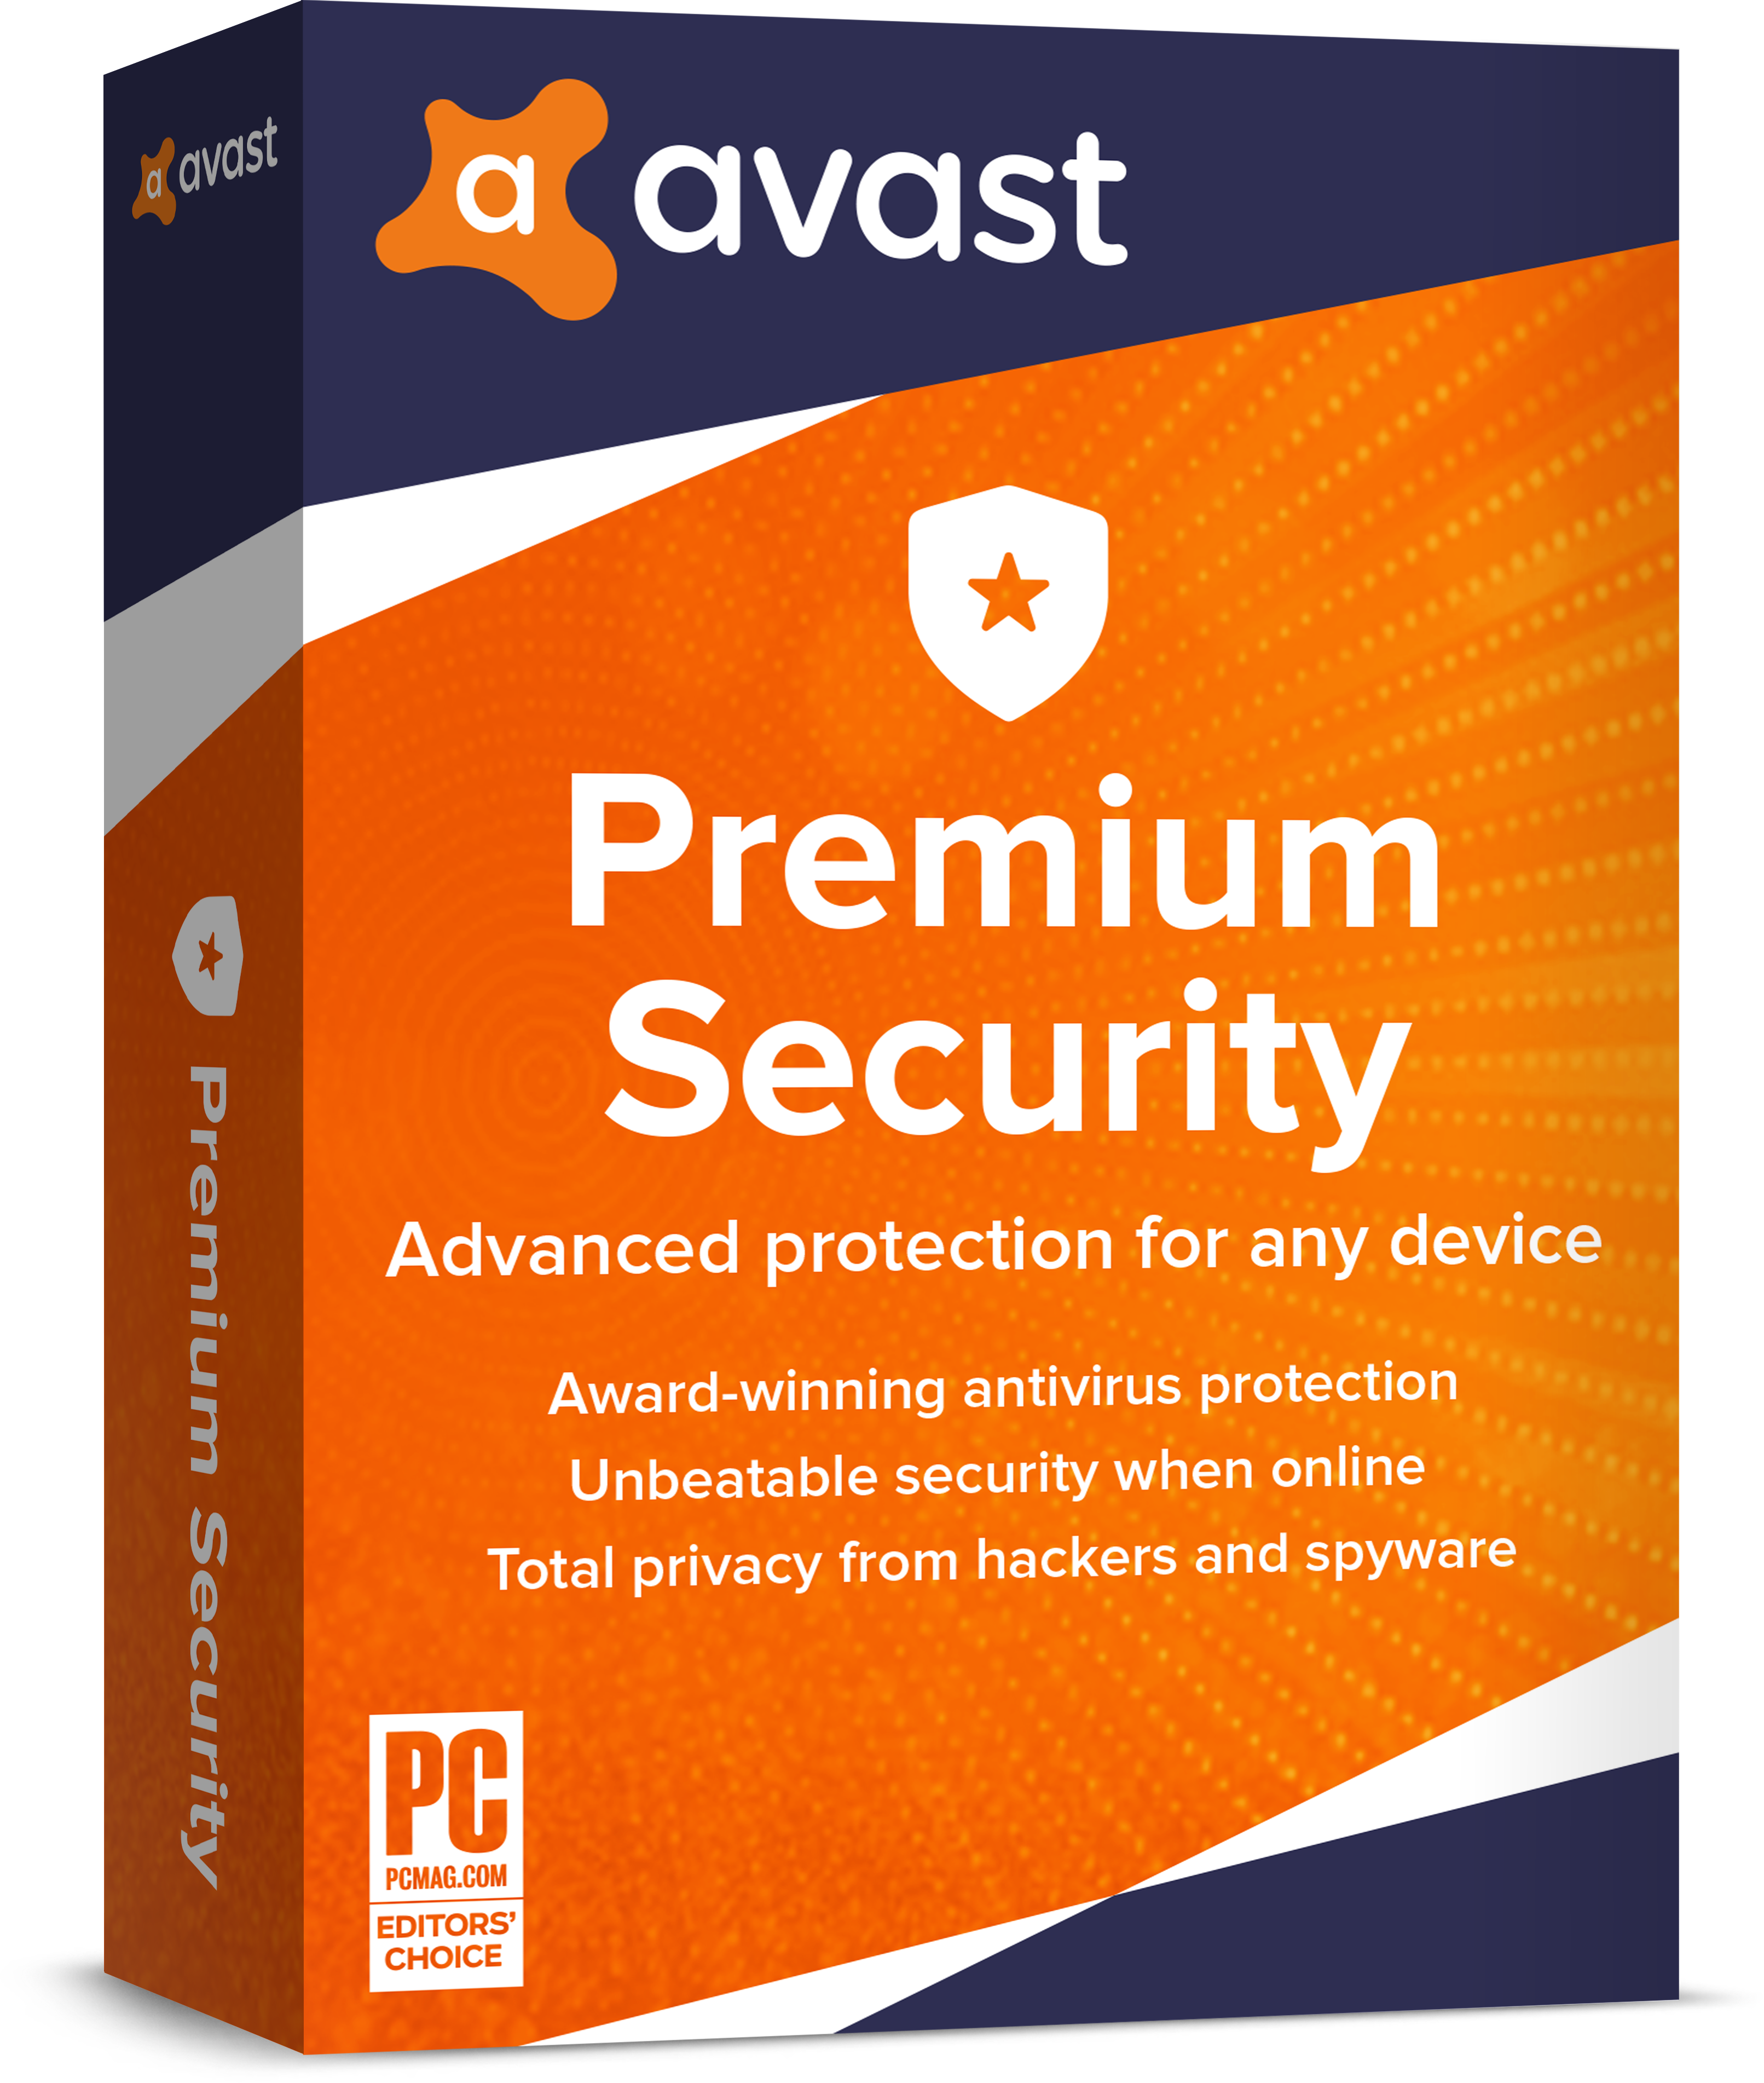 Avast Premium Security crack download torrent